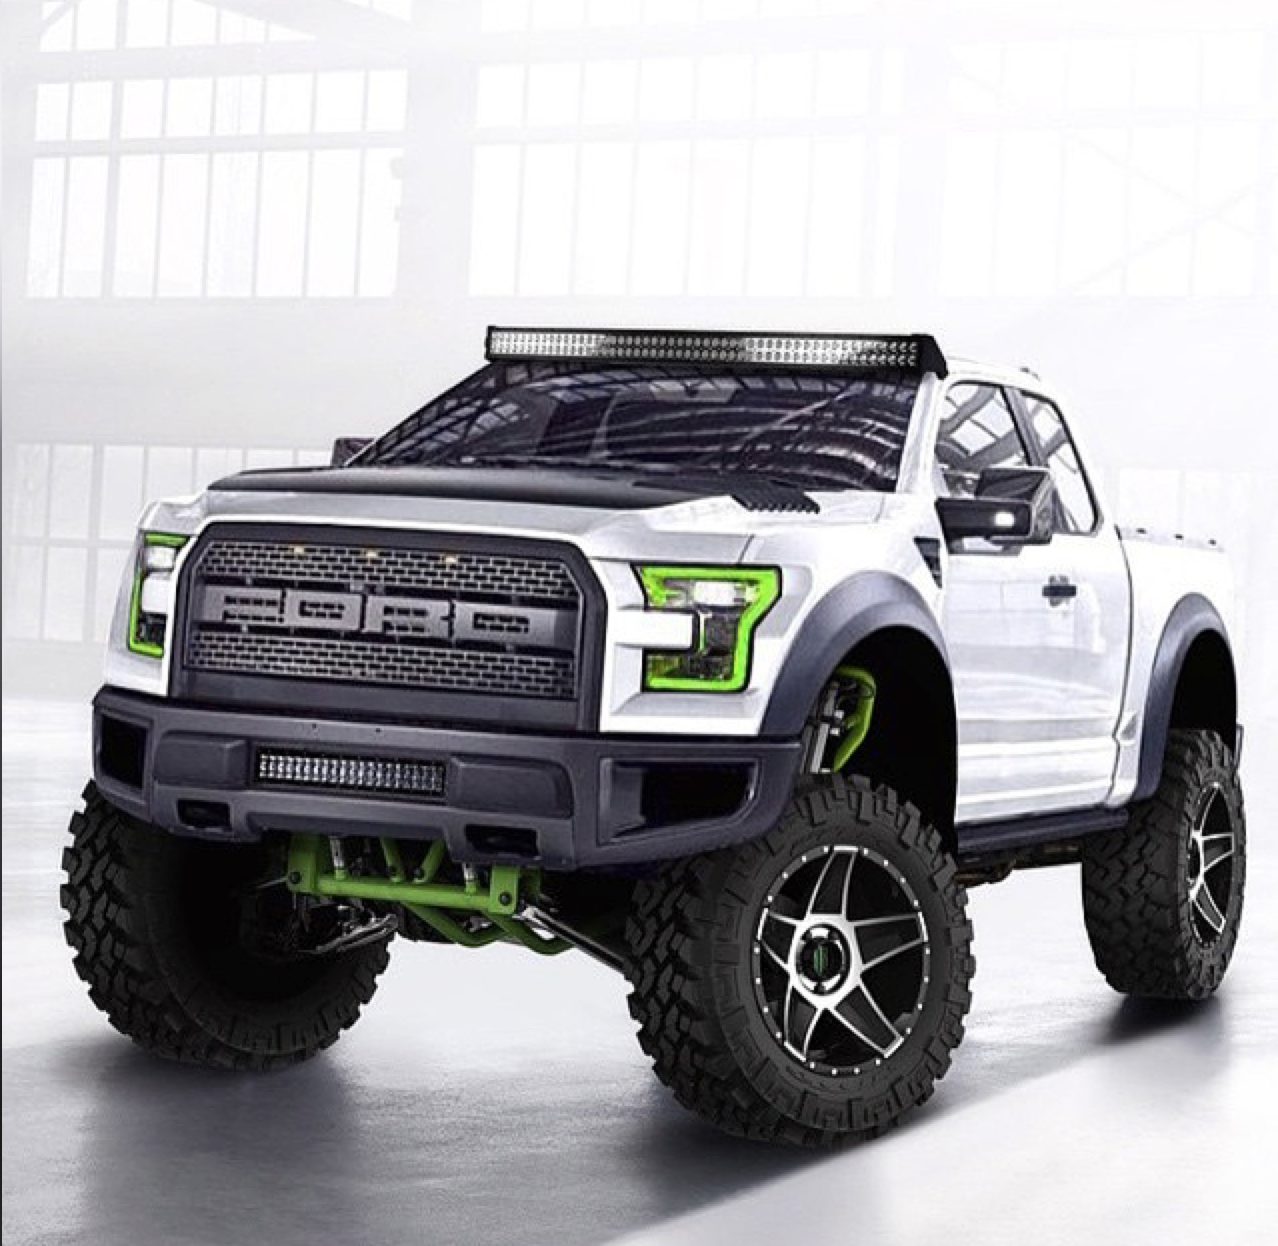 Gobajaca goaltaca 2017 ford raptor loses weight gets more power and tech fuel wheels and rims fuel offroad www wheelhero com fuel